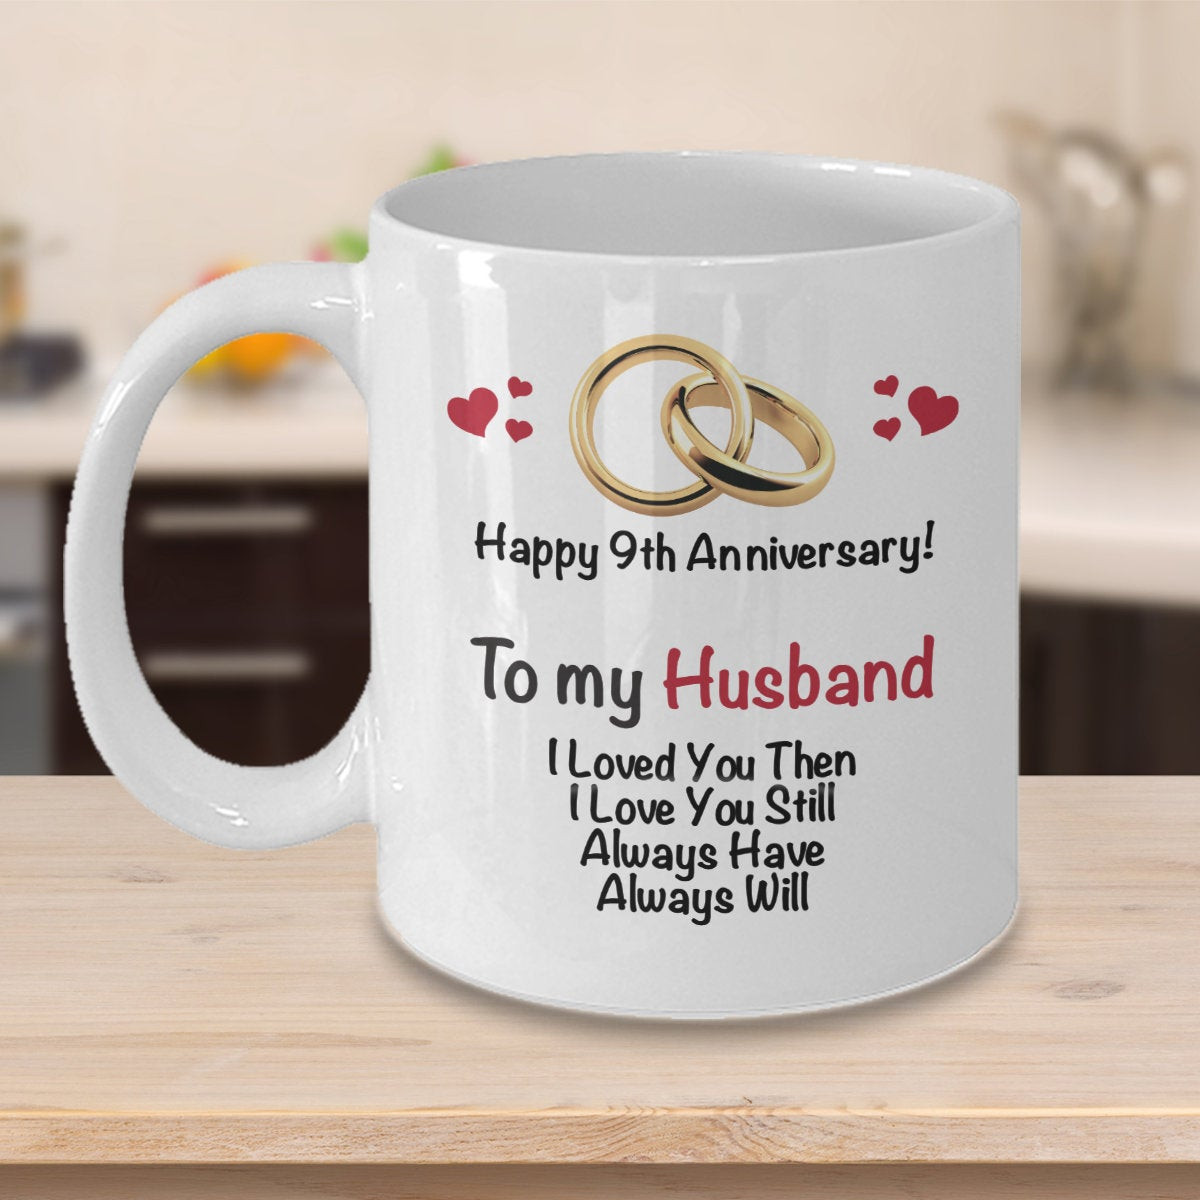 Ninth Anniversary Gift Ideas  9th Anniversary Gift Ideas for Husband 9th Wedding